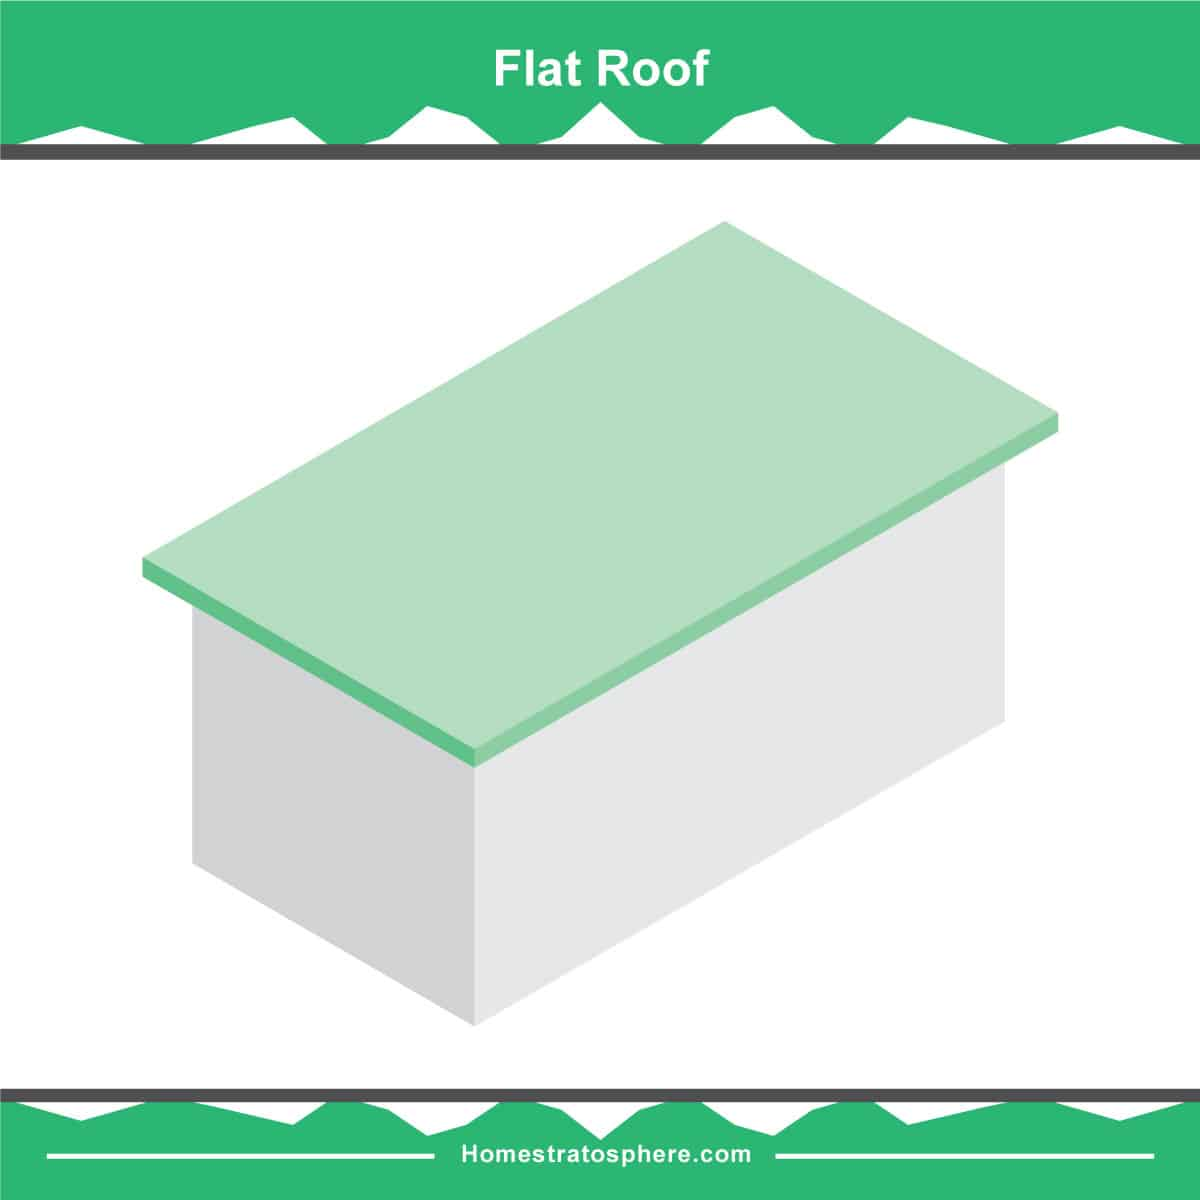 Flat roof diagram